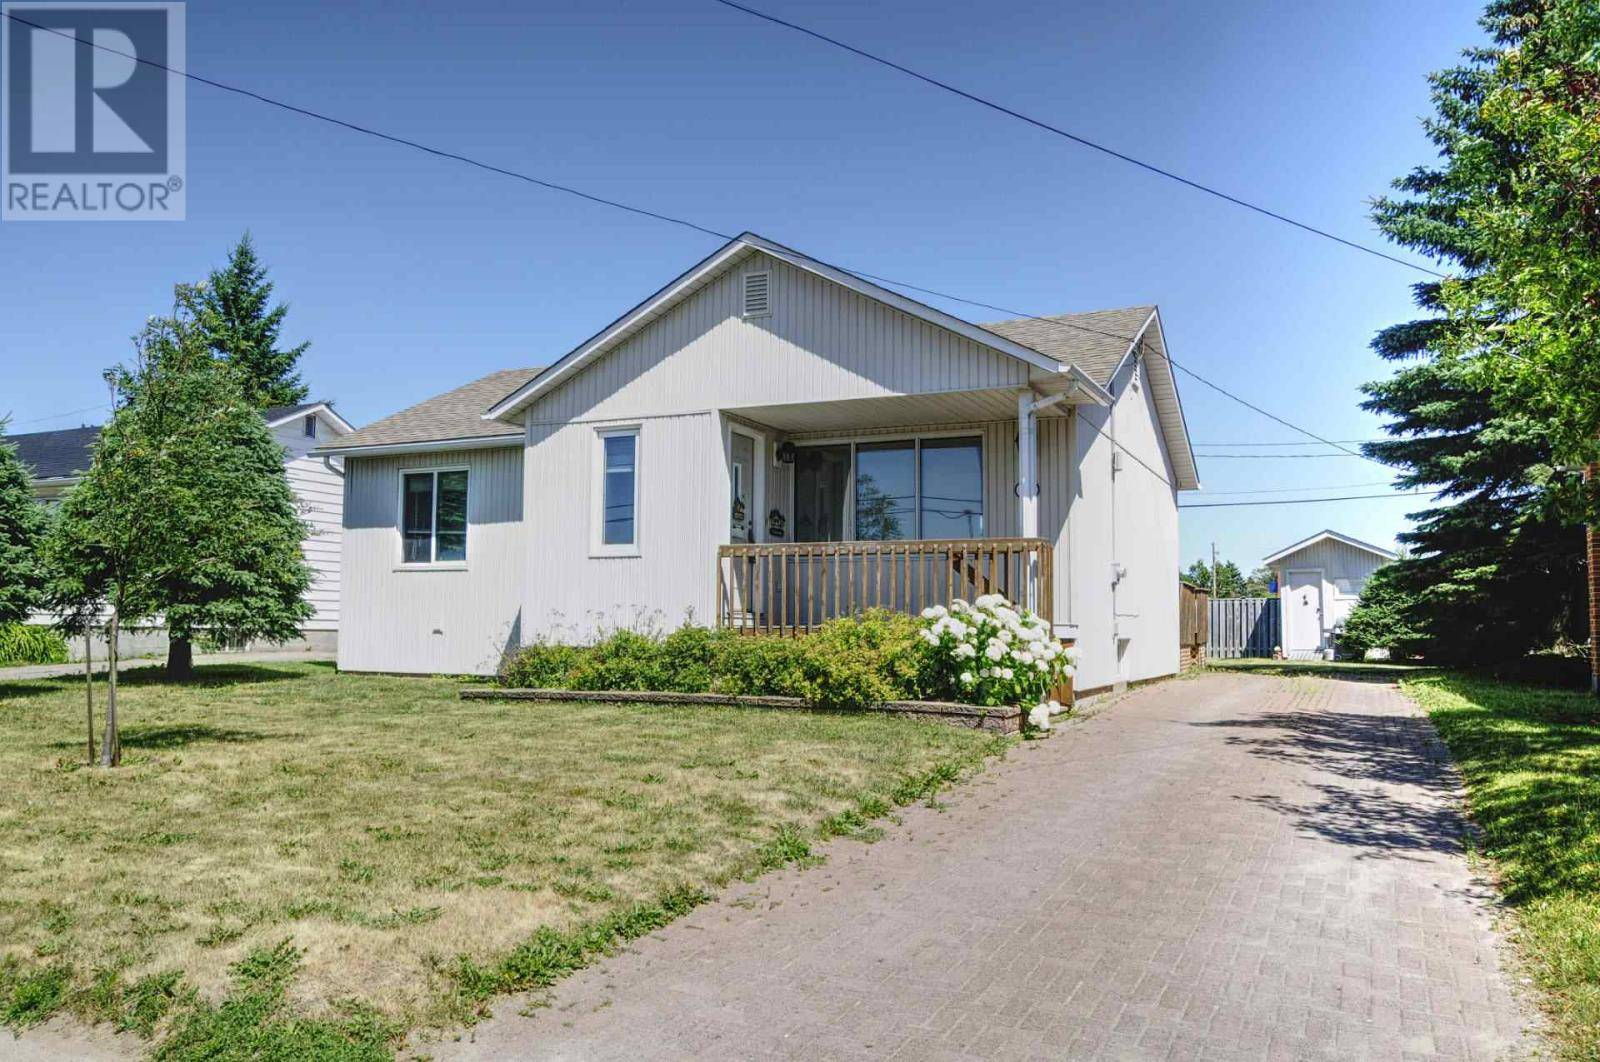 House for sale at 16 Willow Ave Sault Ste. Marie Ontario - MLS: SM127937